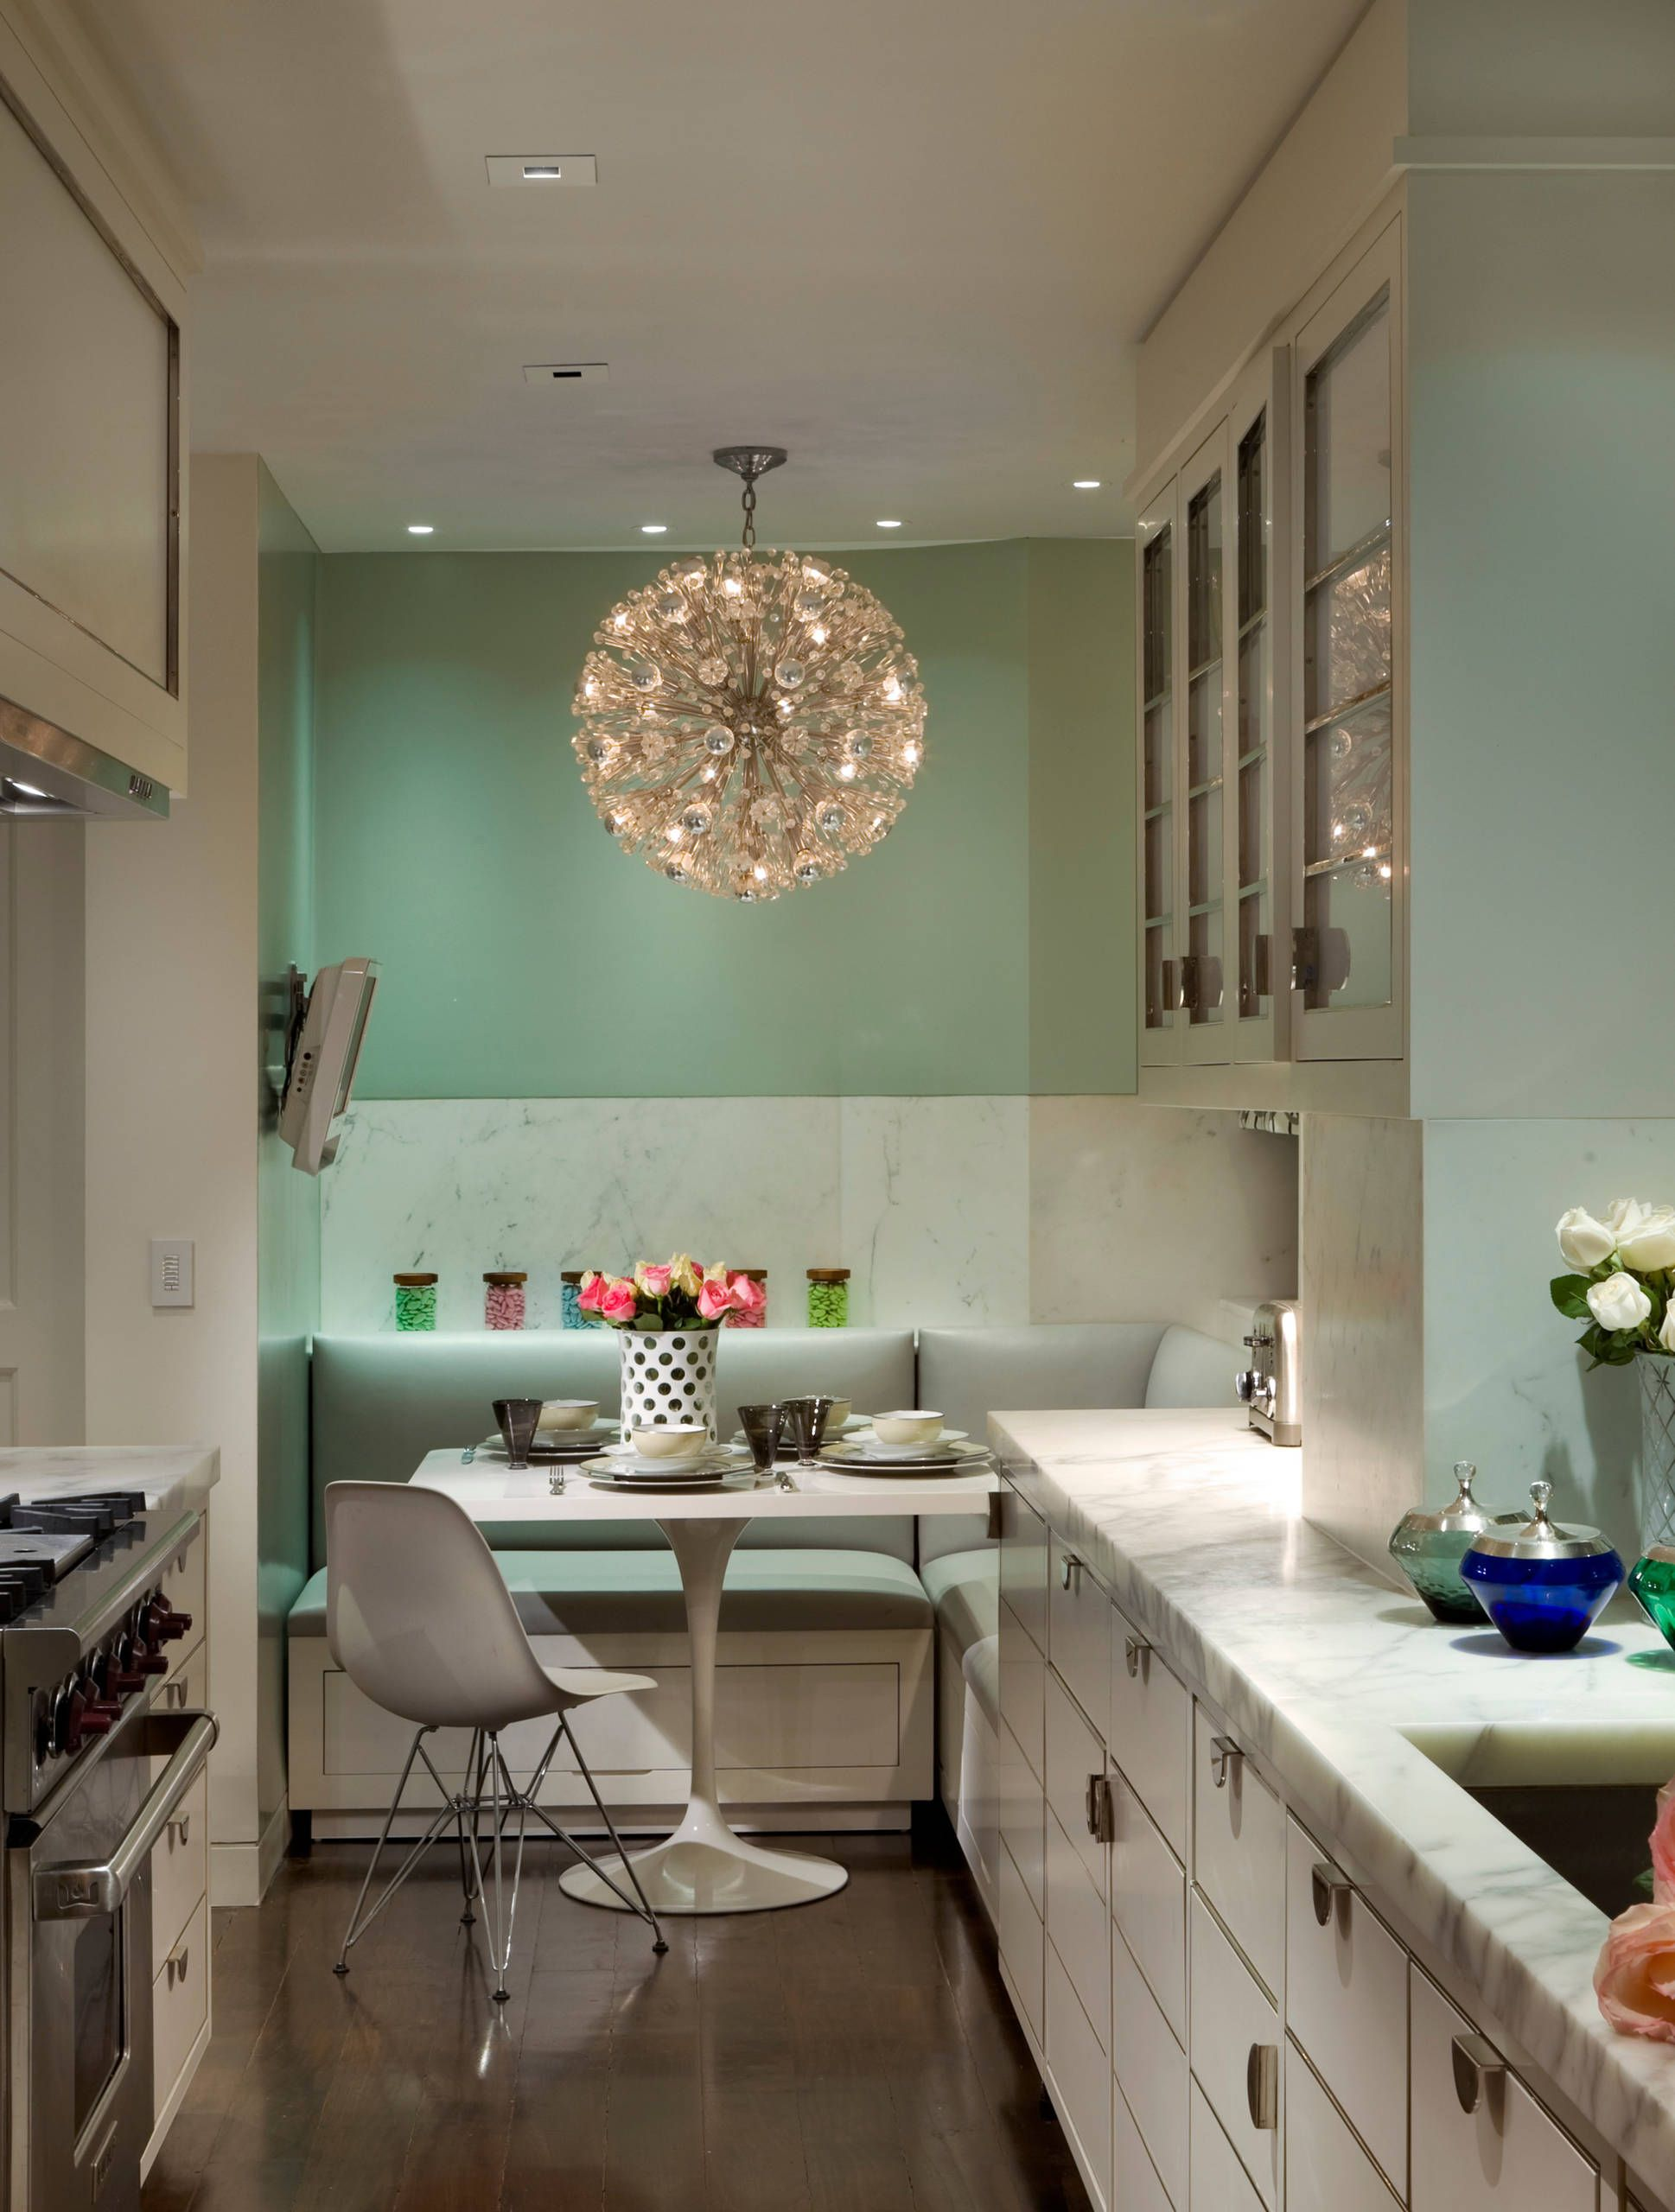 12 Small and Efficient Kitchen Design Ideas Photo Gallery – Home ...